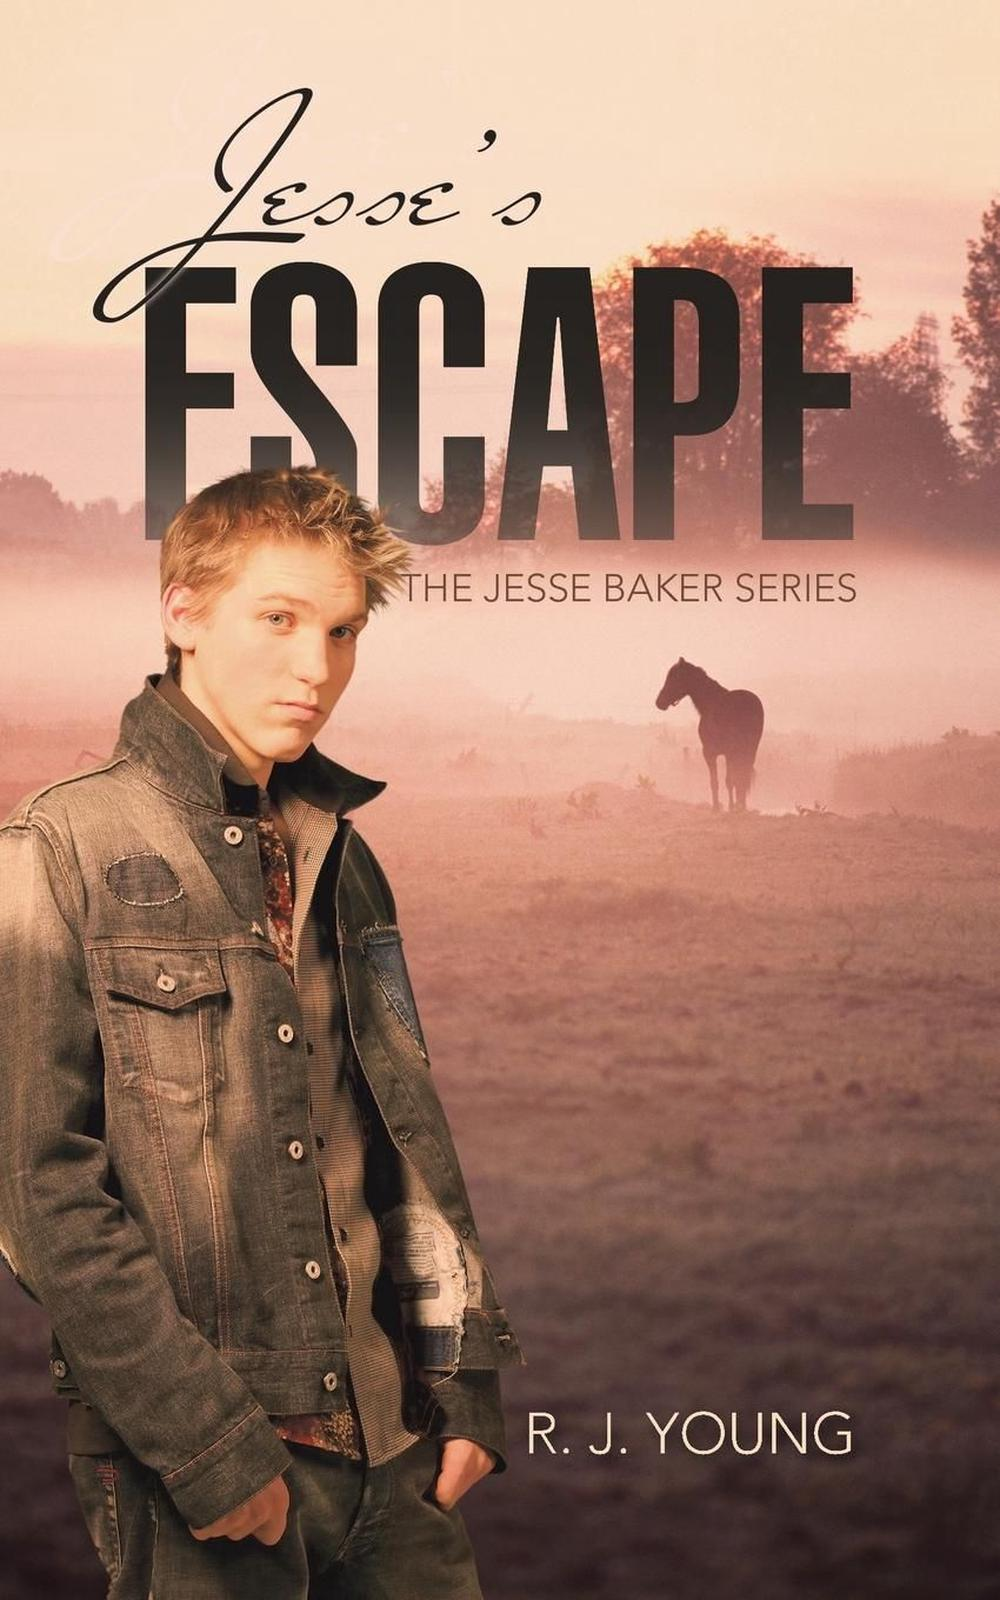 Details about JESSE'S ESCAPE by R.J. Young (English) Paperback Book Free  Shipping!